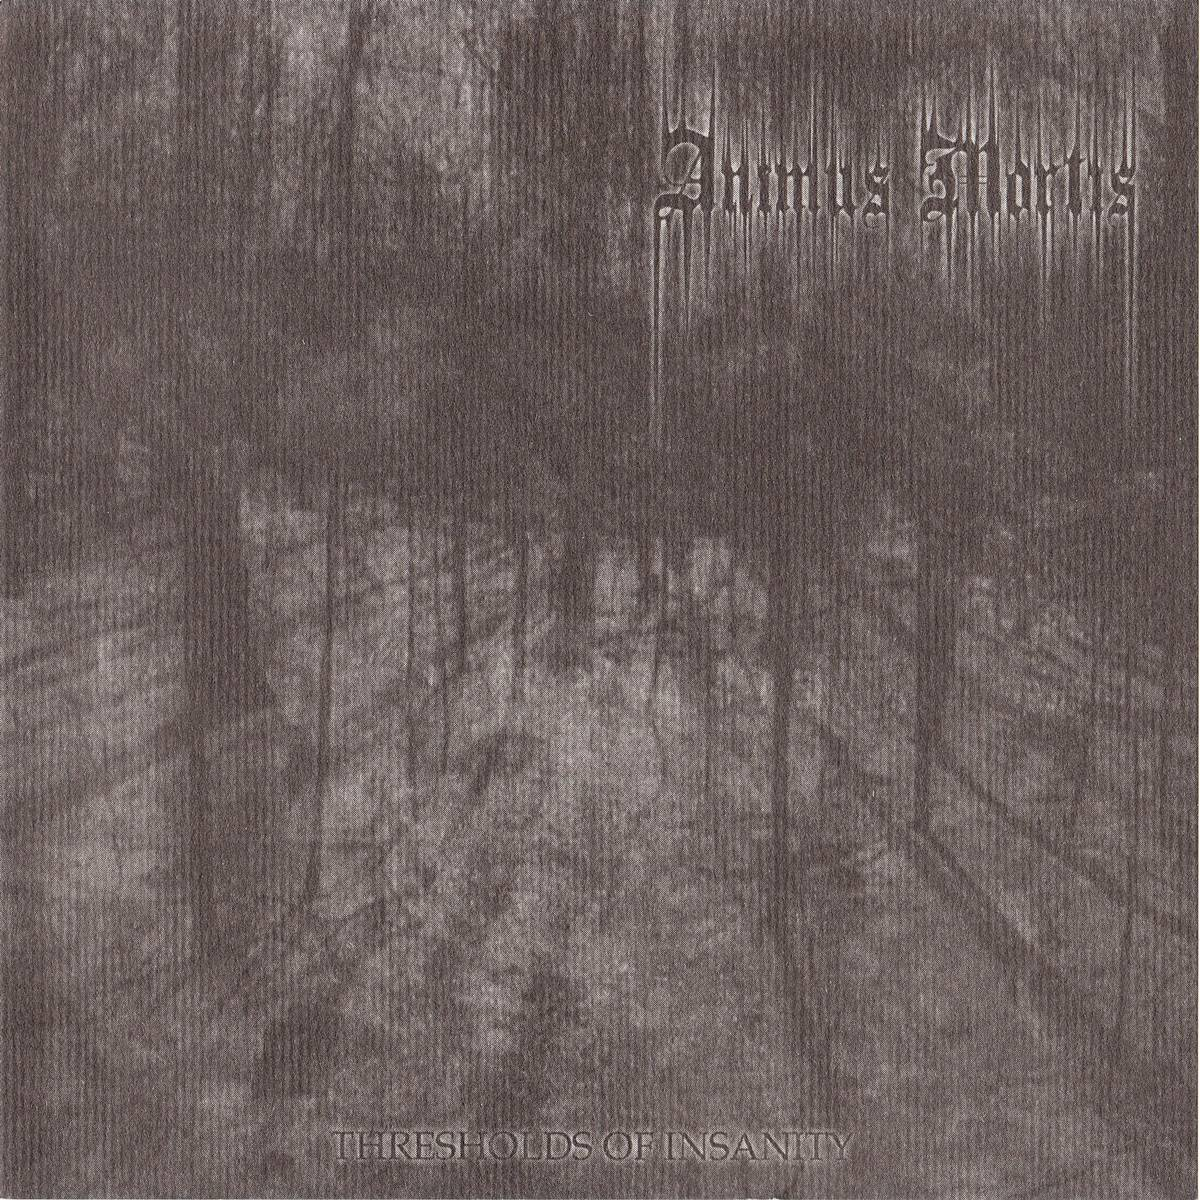 Finsternis: Animus Mortis - Thresholds of Insanity